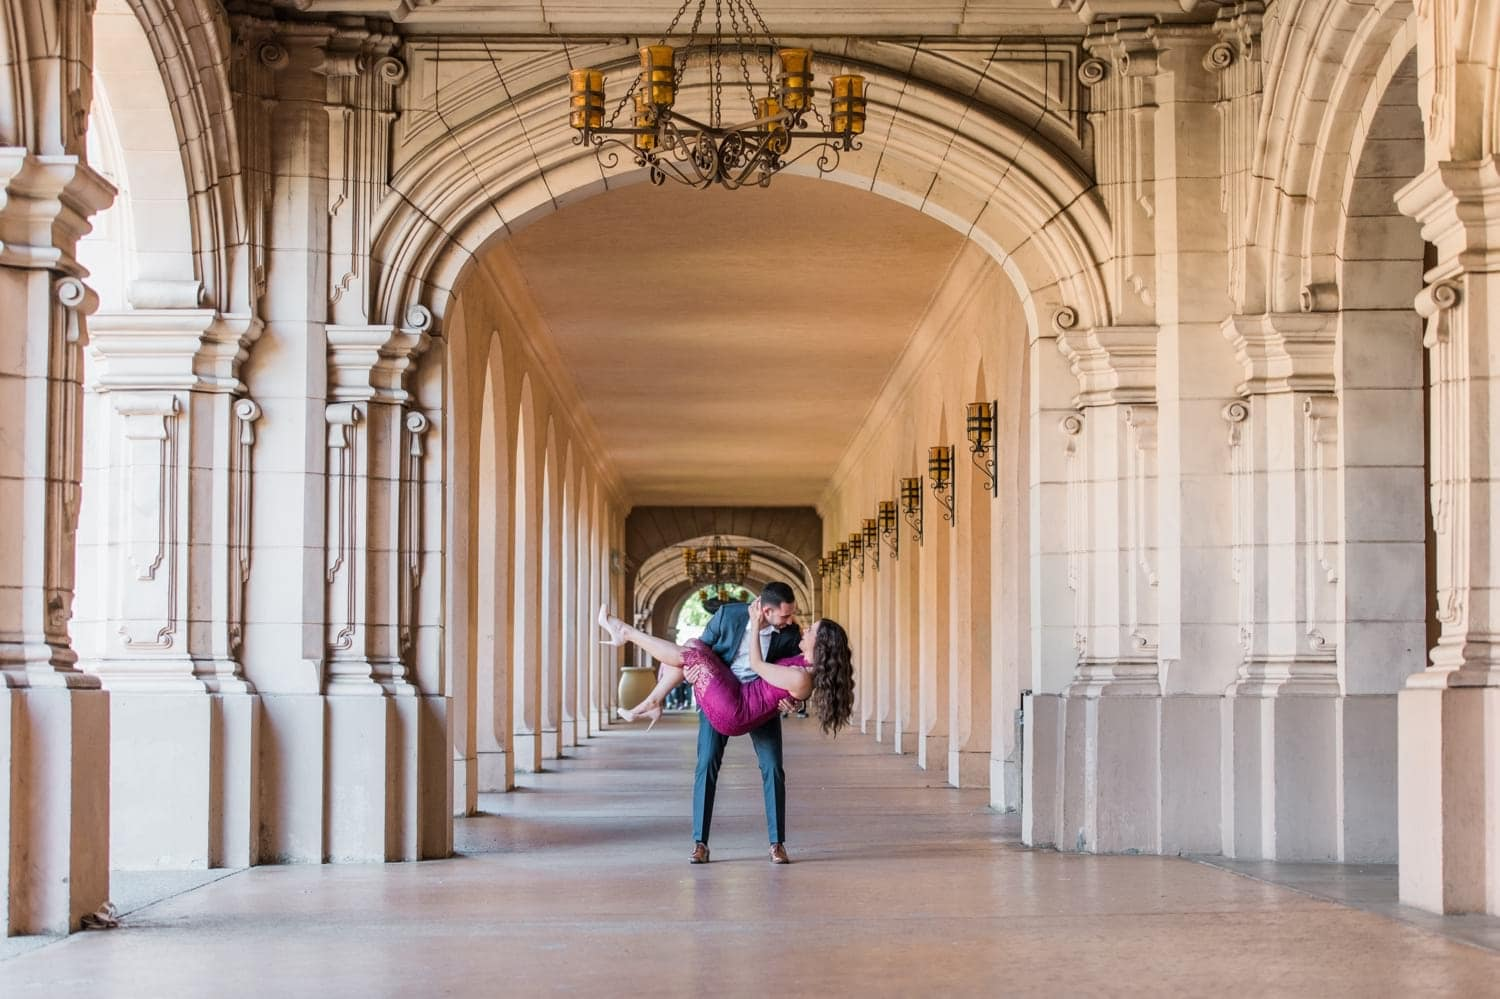 Engagement Photo in a hallway at Balboa Park.